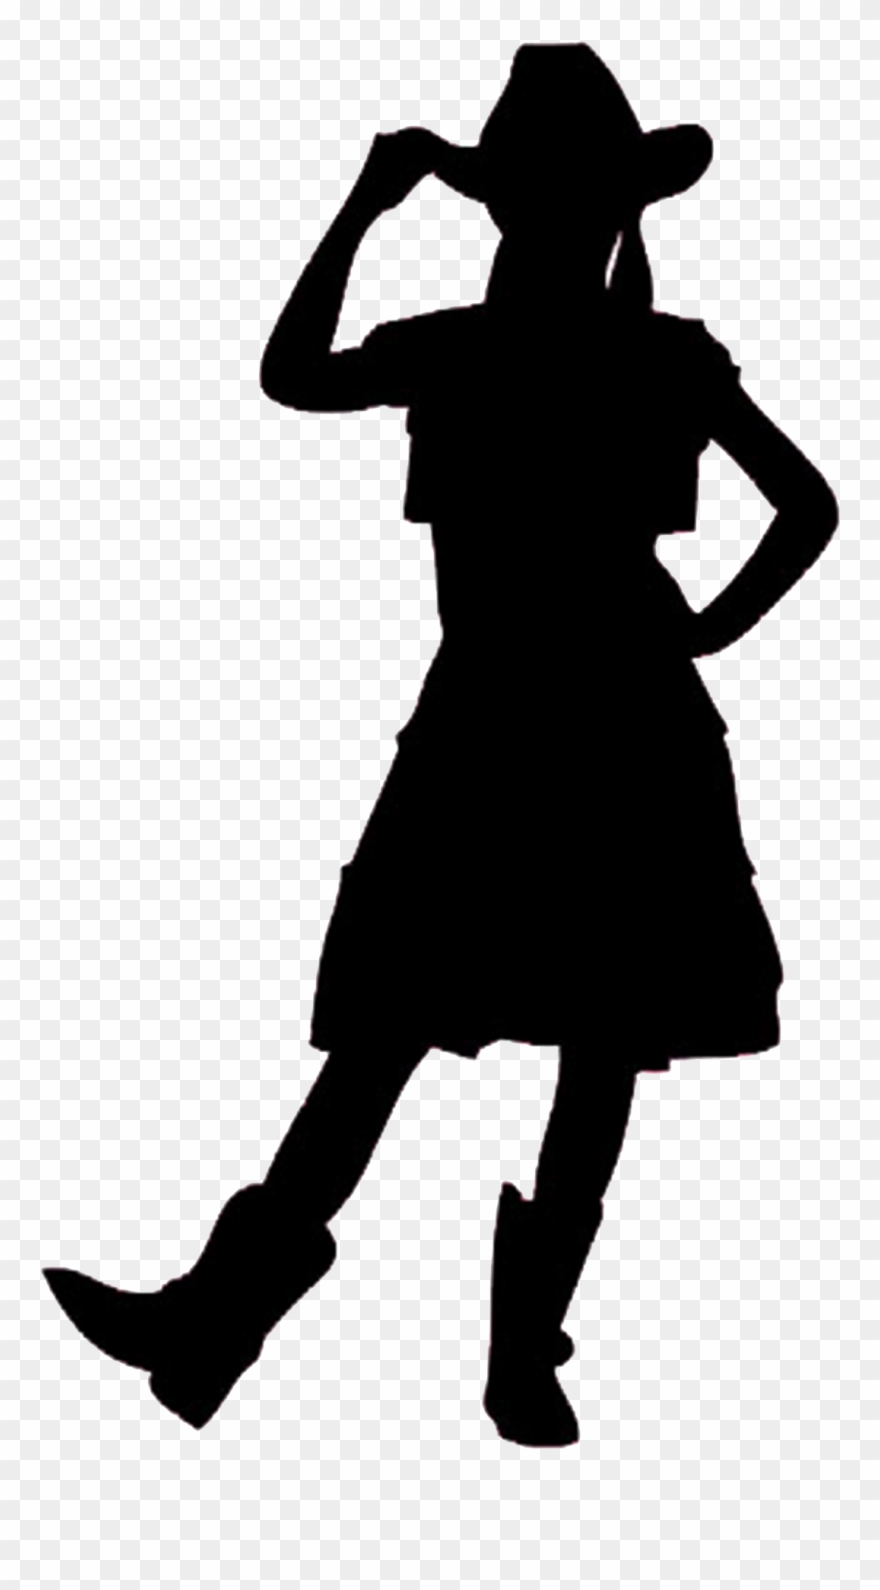 Cowgirl silhouette clipart free picture free Cowgirl Silhouette Clip Art Free - Pink Cowgirl Silhouette - Png ... picture free